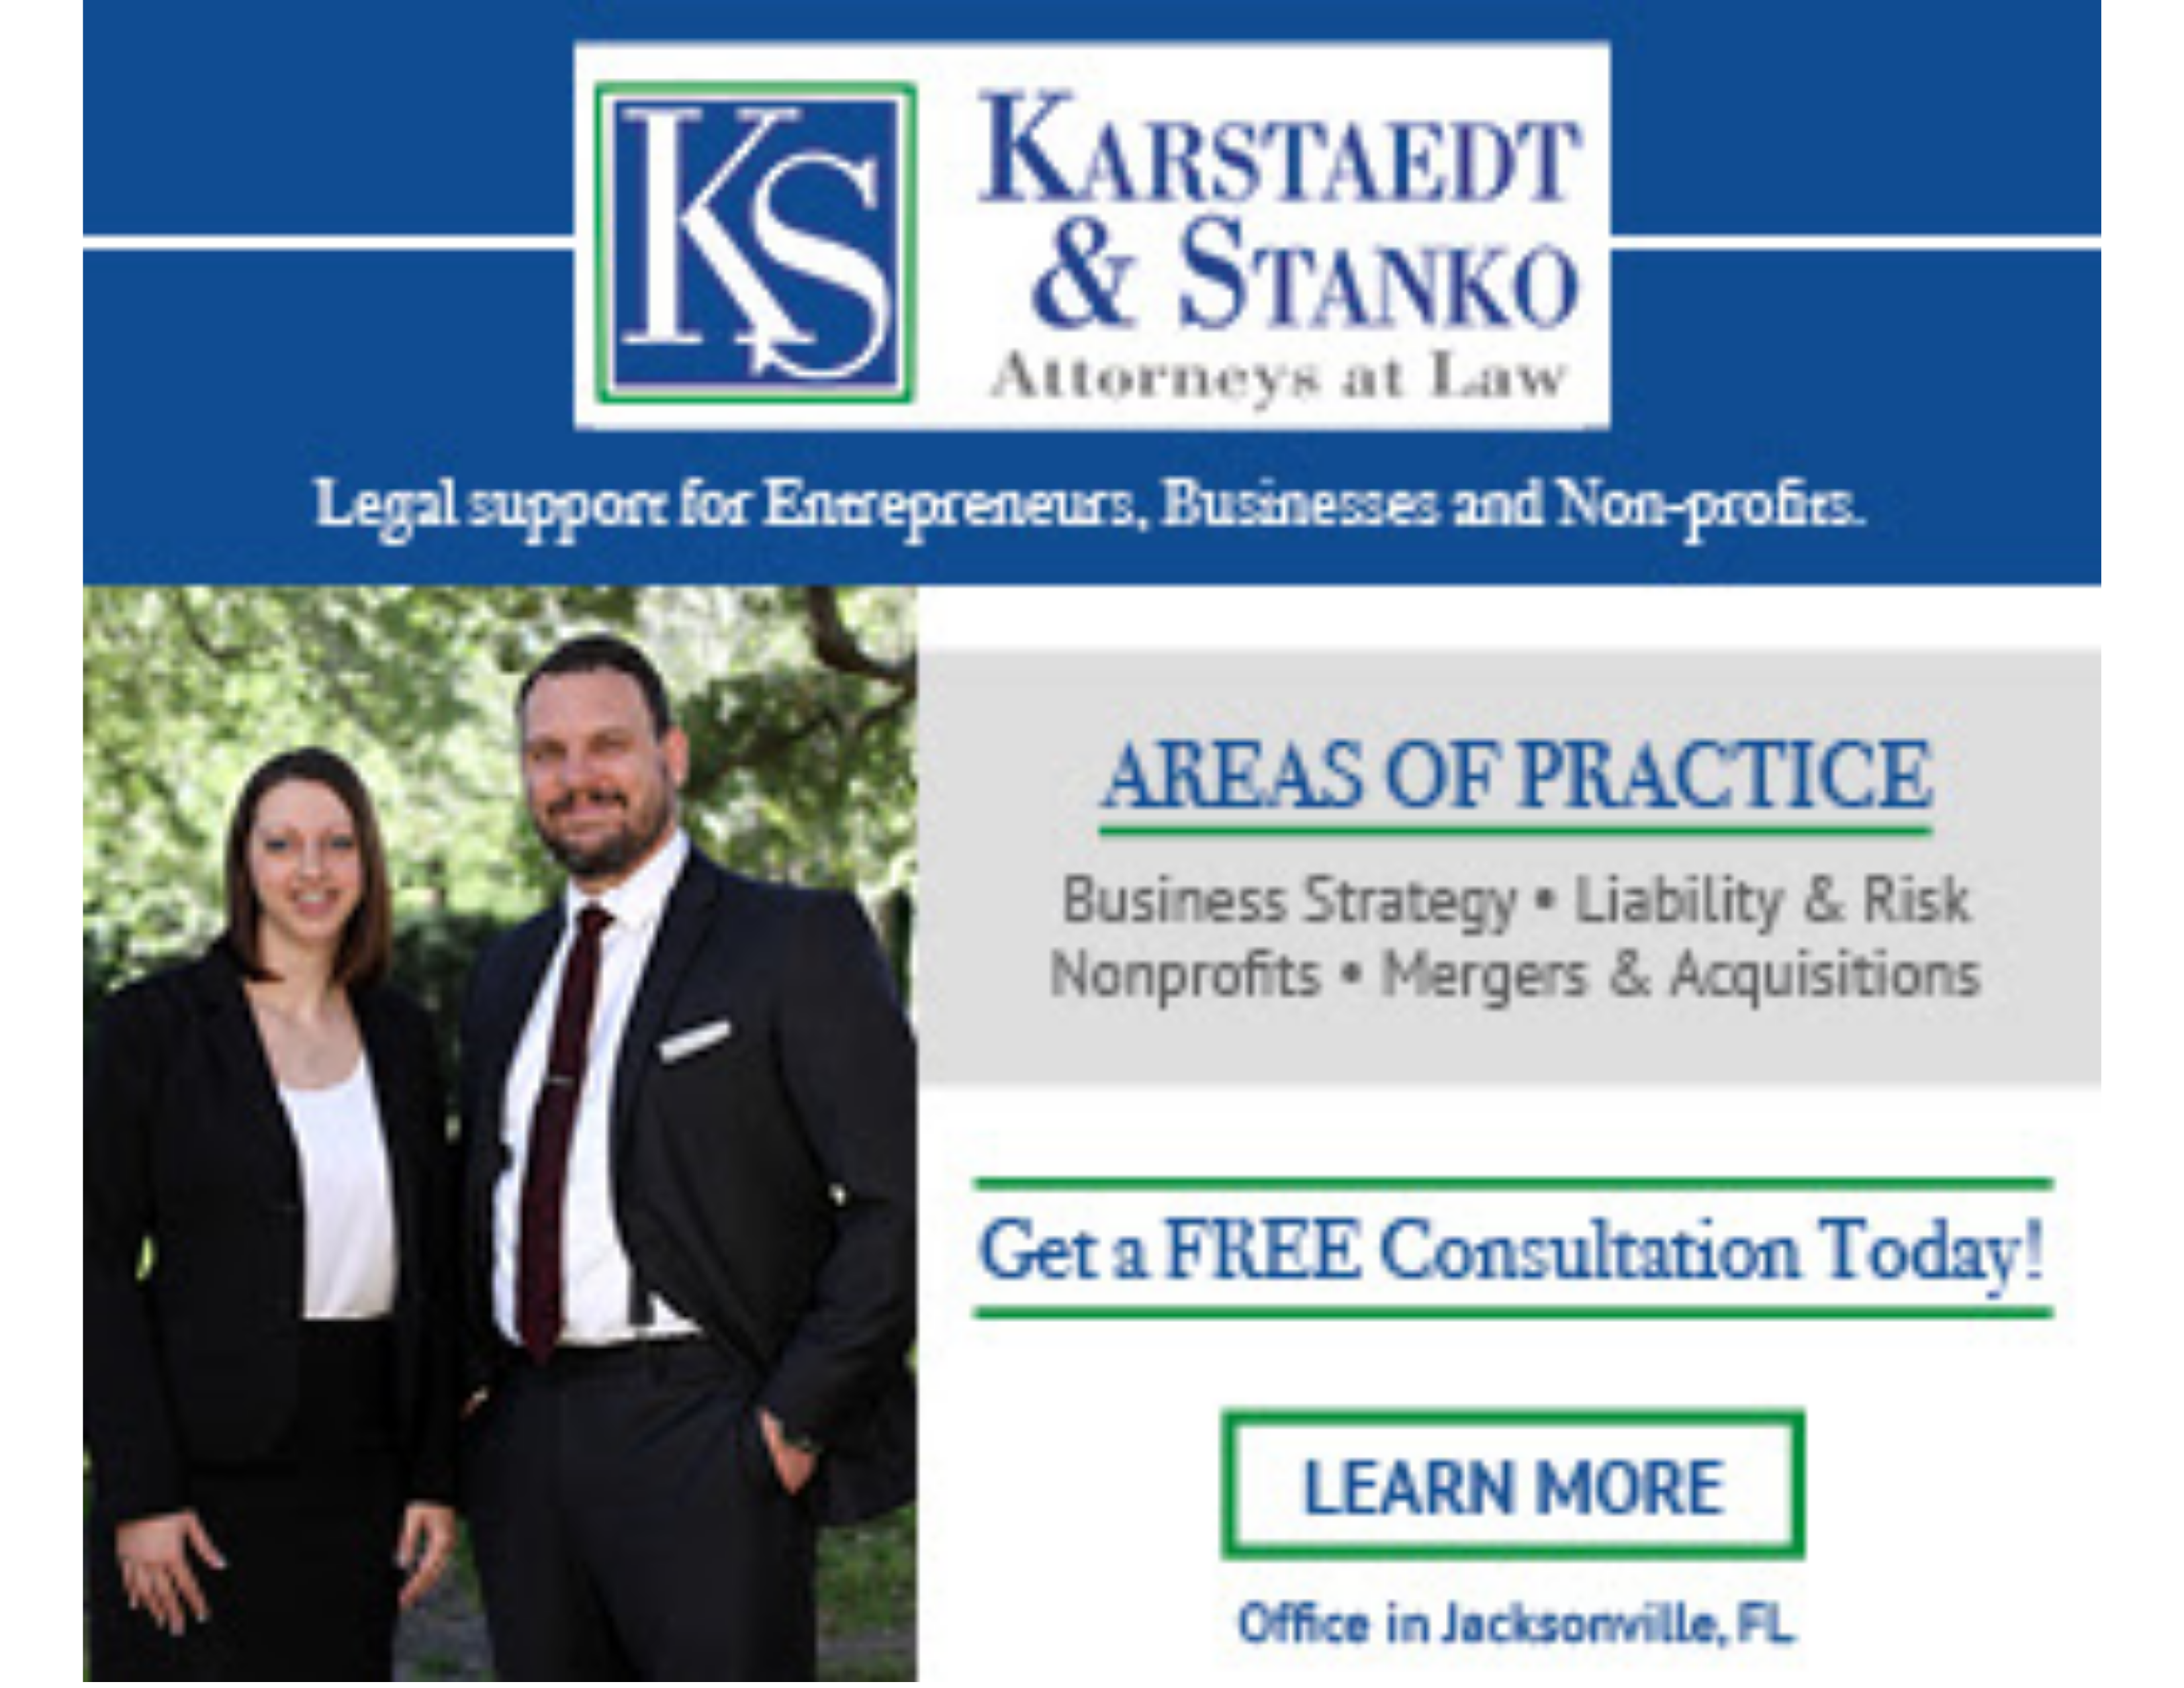 Karstaedt and Stanko Attorneys at Law